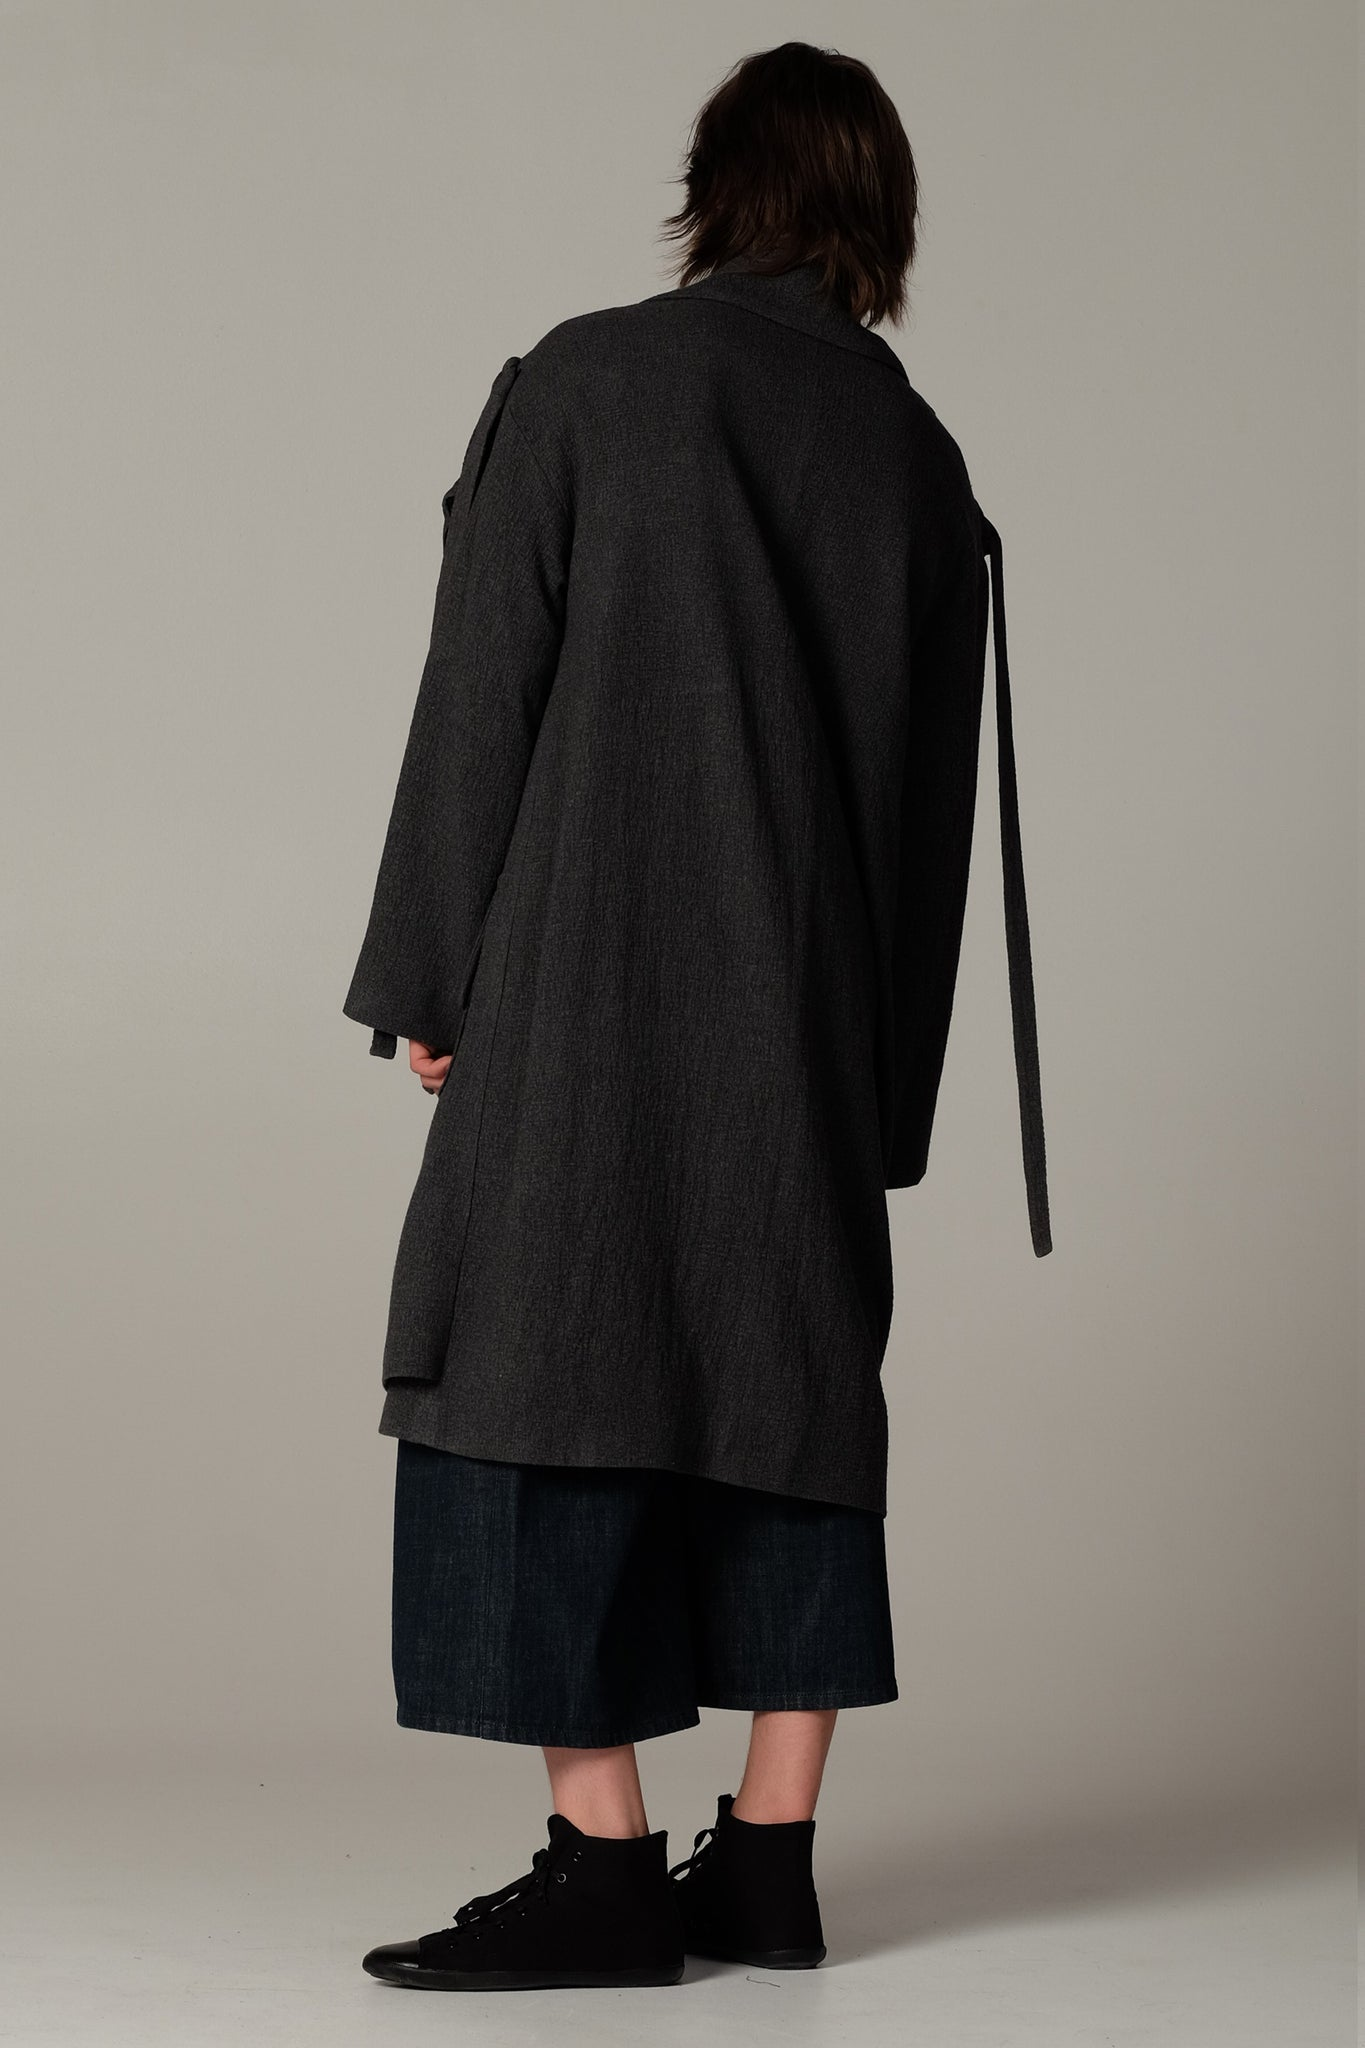 OUTSIDER wool coat - One Wolf